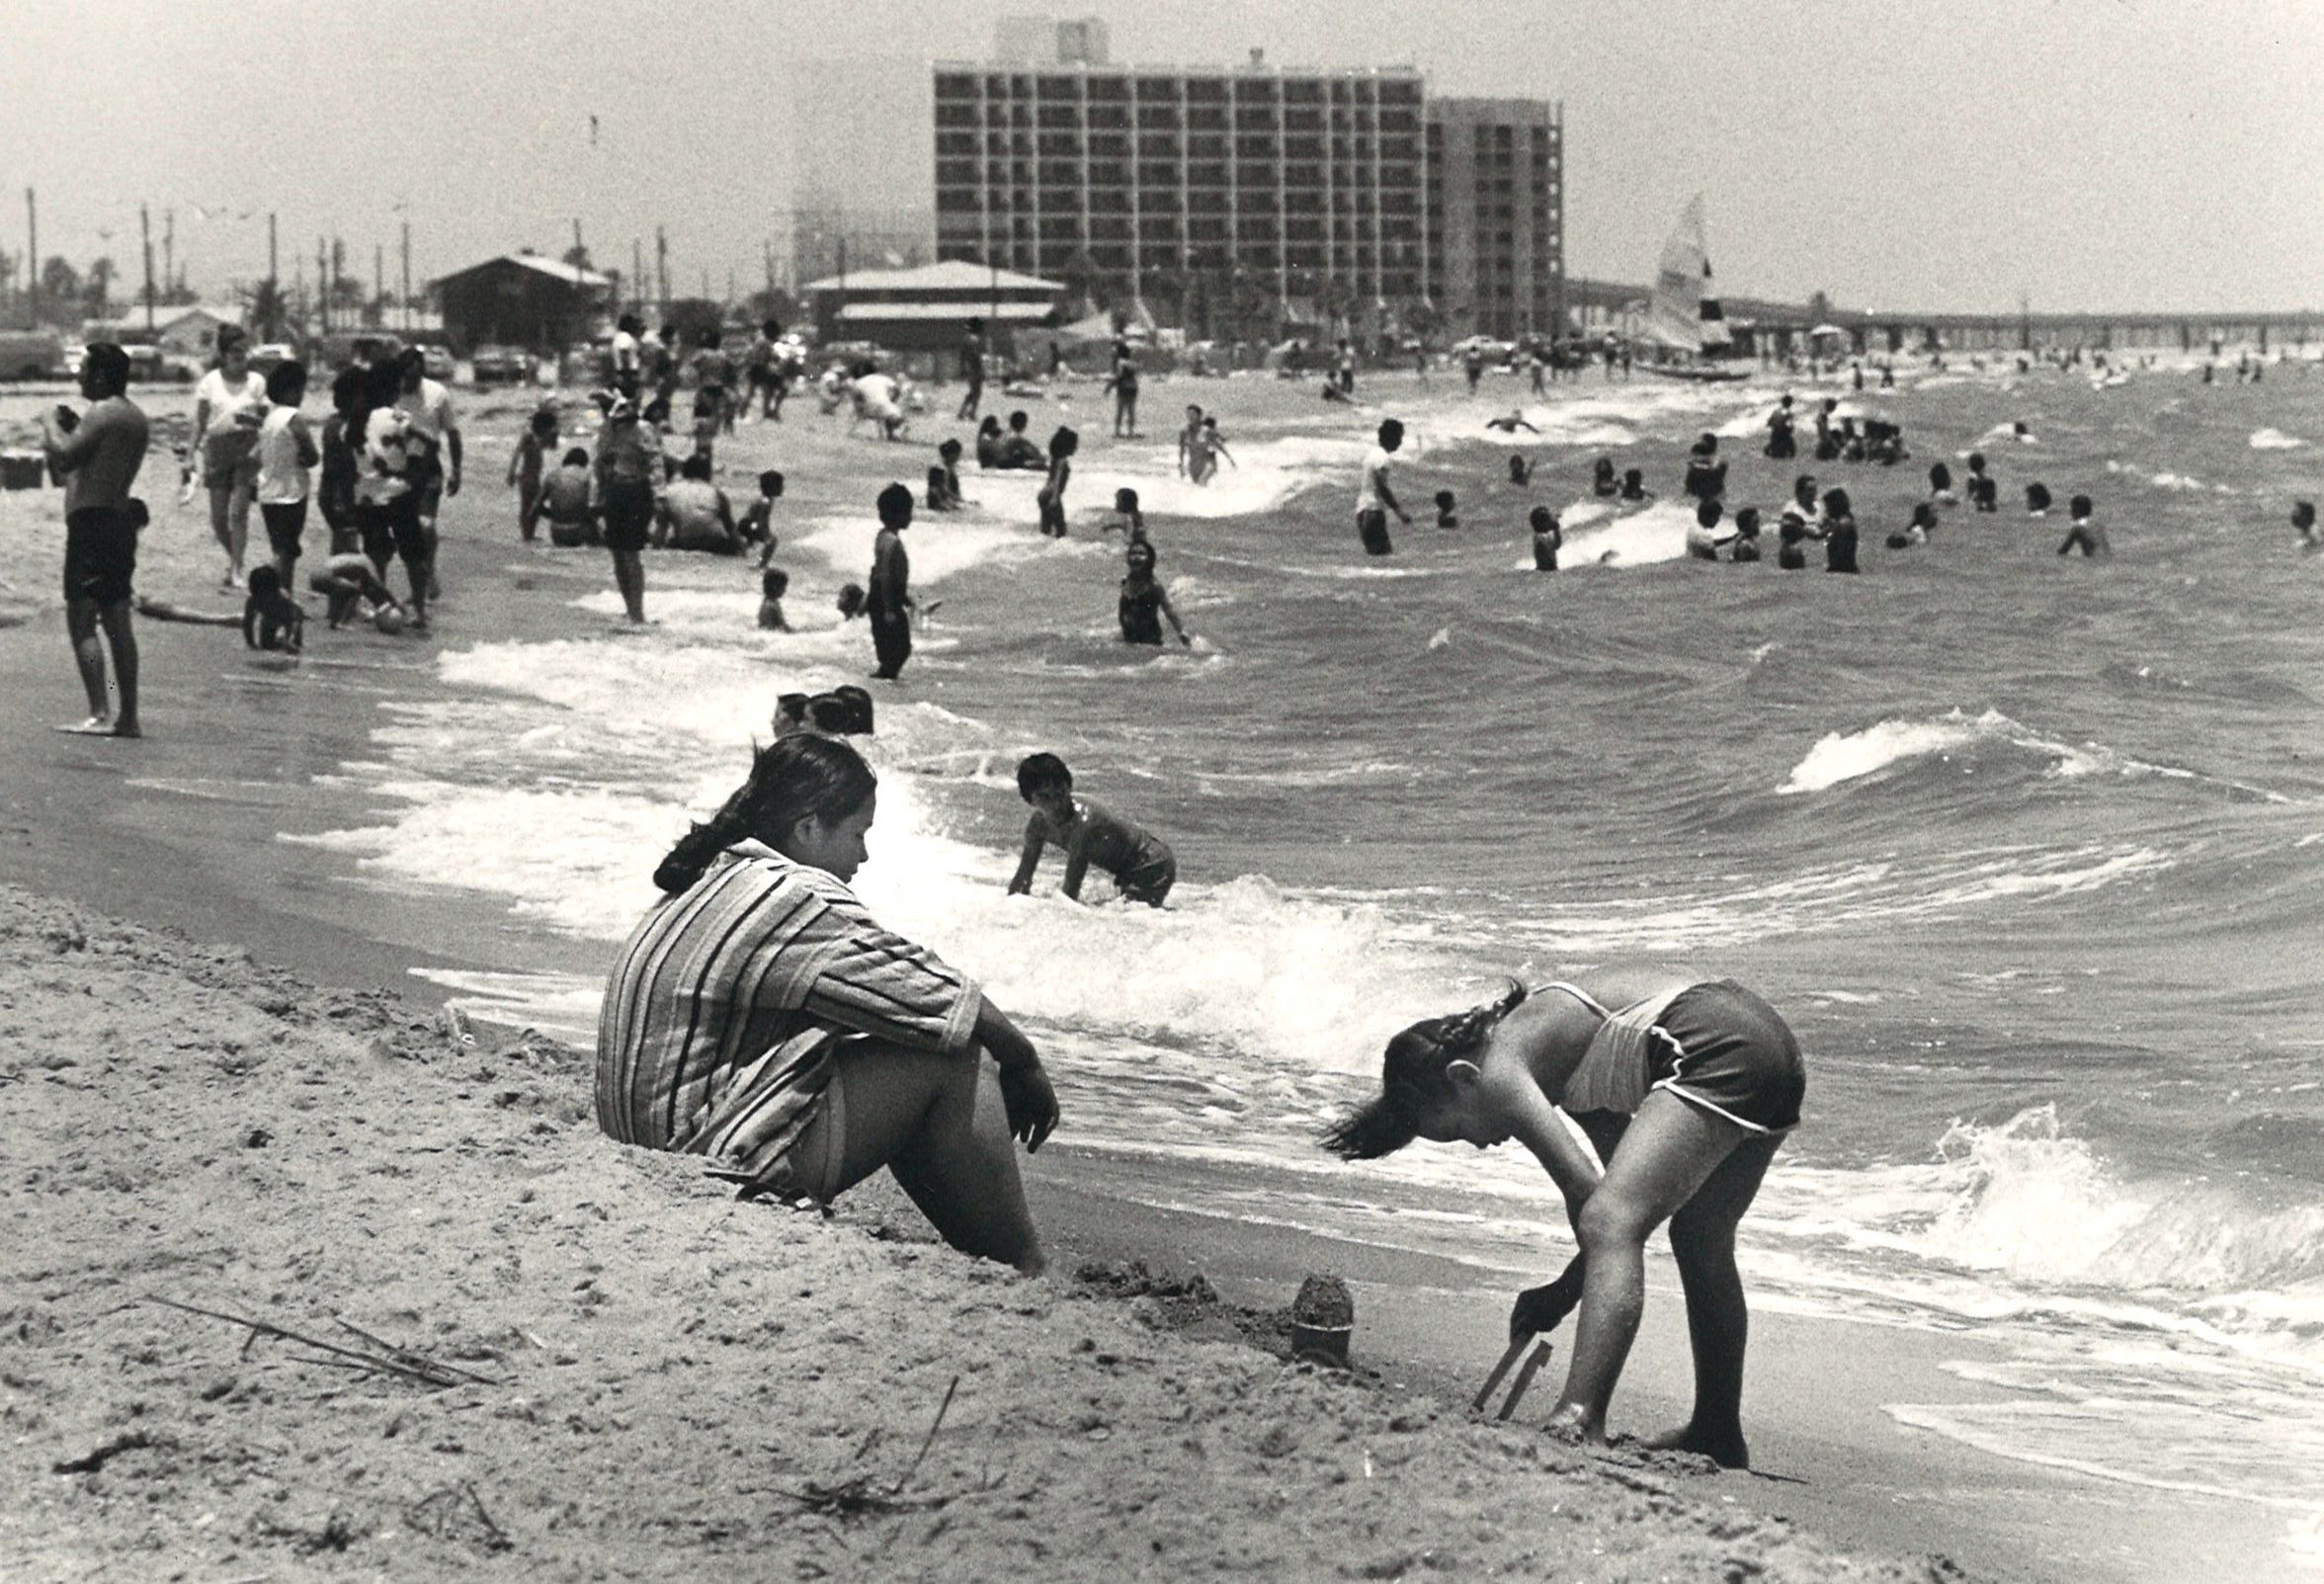 Crowds on Corpus Christi's North Beach on June 8, 1980.